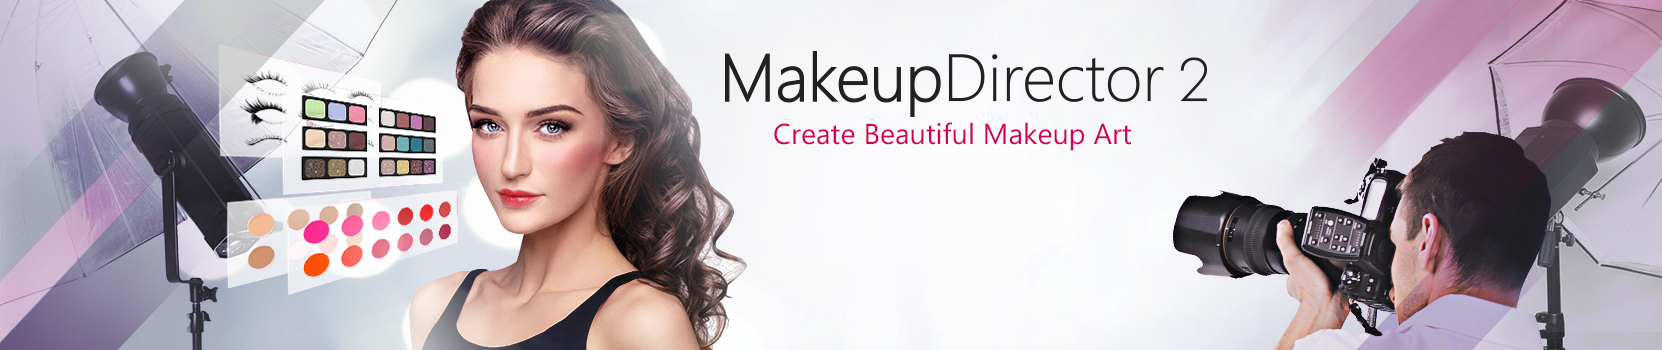 Makeupdirector Digital Makeup Technology For Makeup Artists